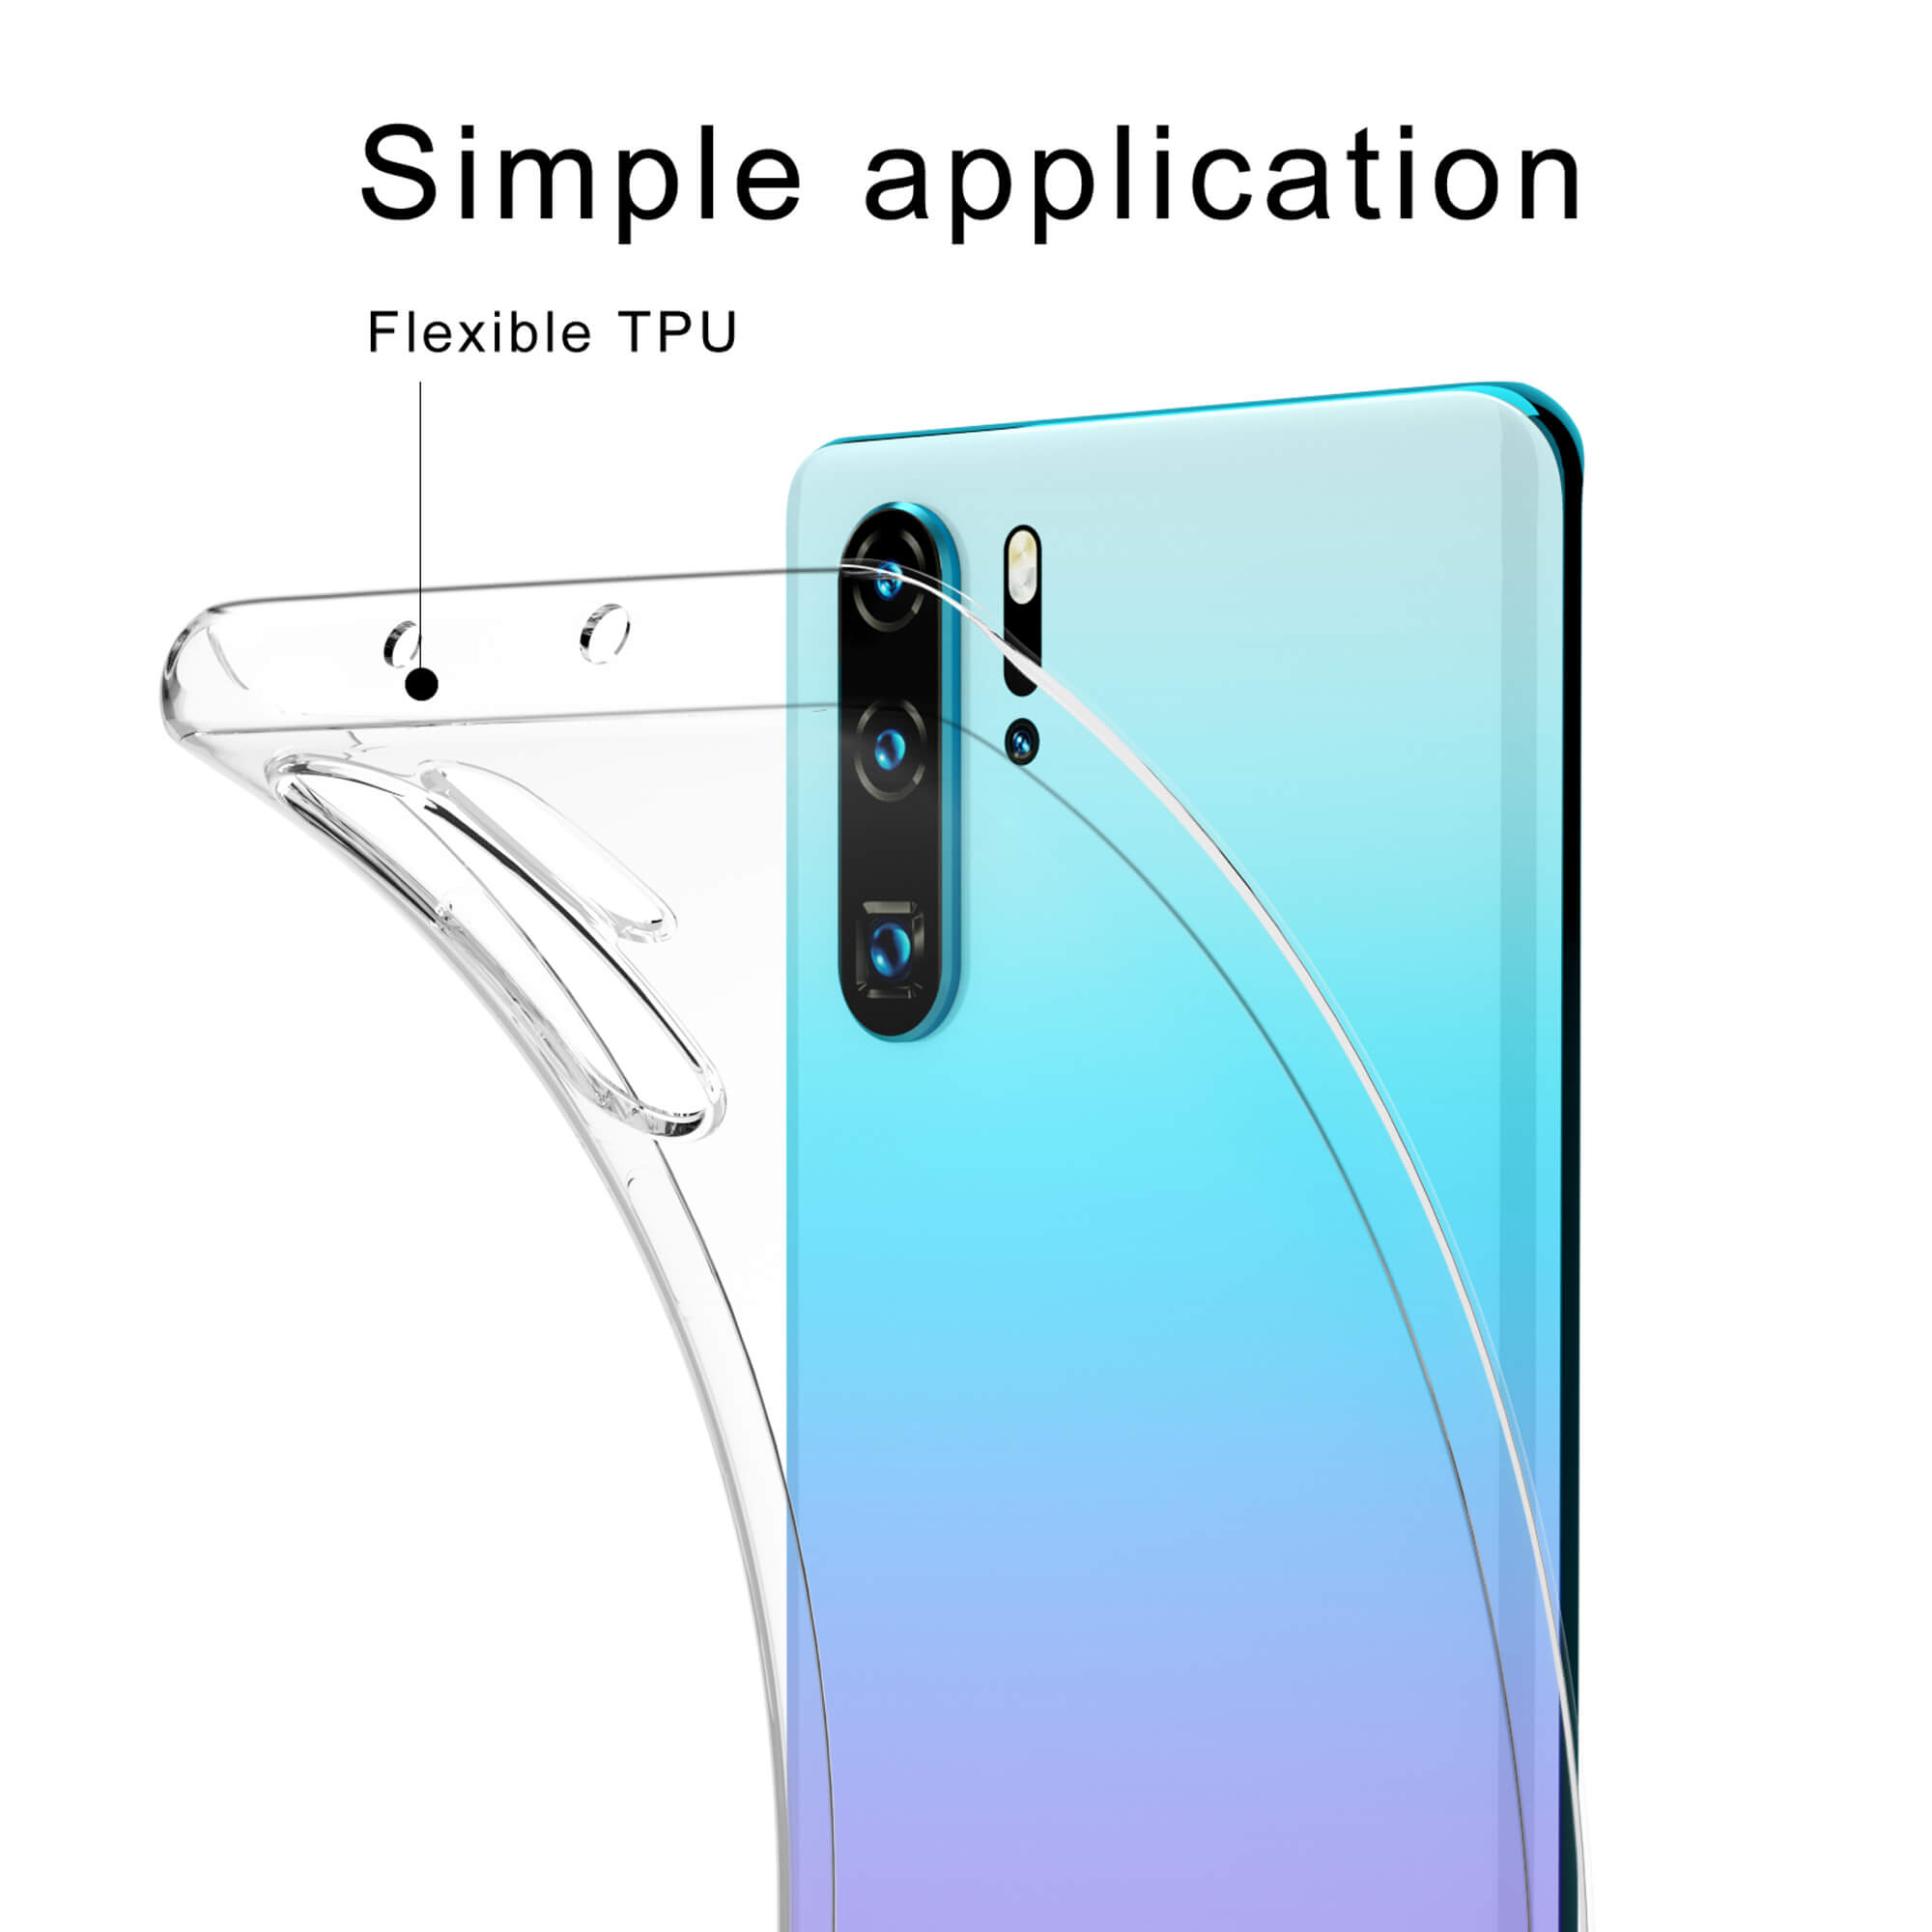 Shockproof-Silicone-Protective-Clear-Gel-Cover-Case-For-Huawei-P20-Pro-P-Smart thumbnail 92